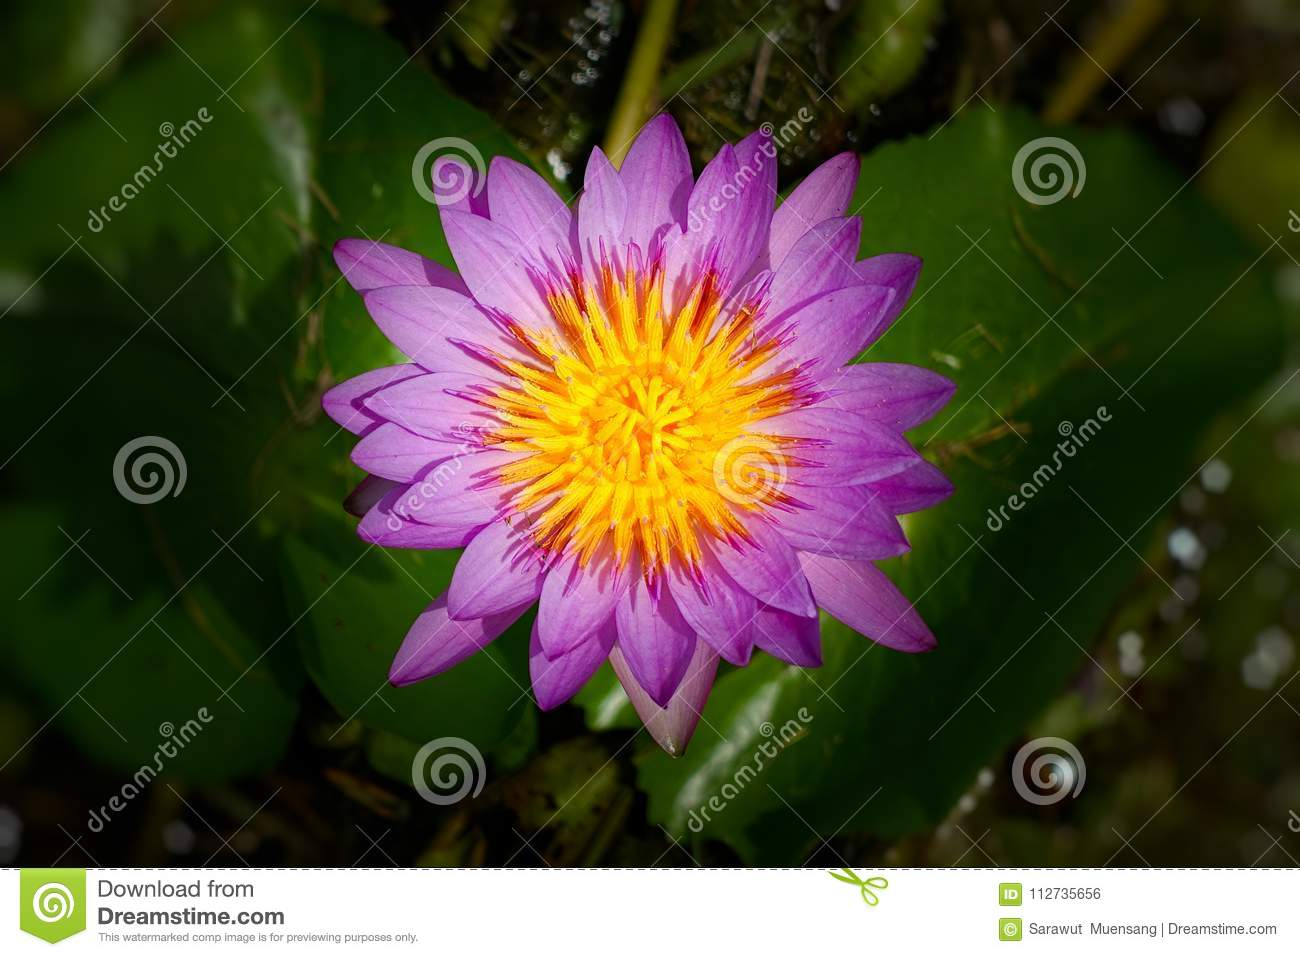 Image Of A Lotus Flower Stock Photo Image Of Flower 112735656